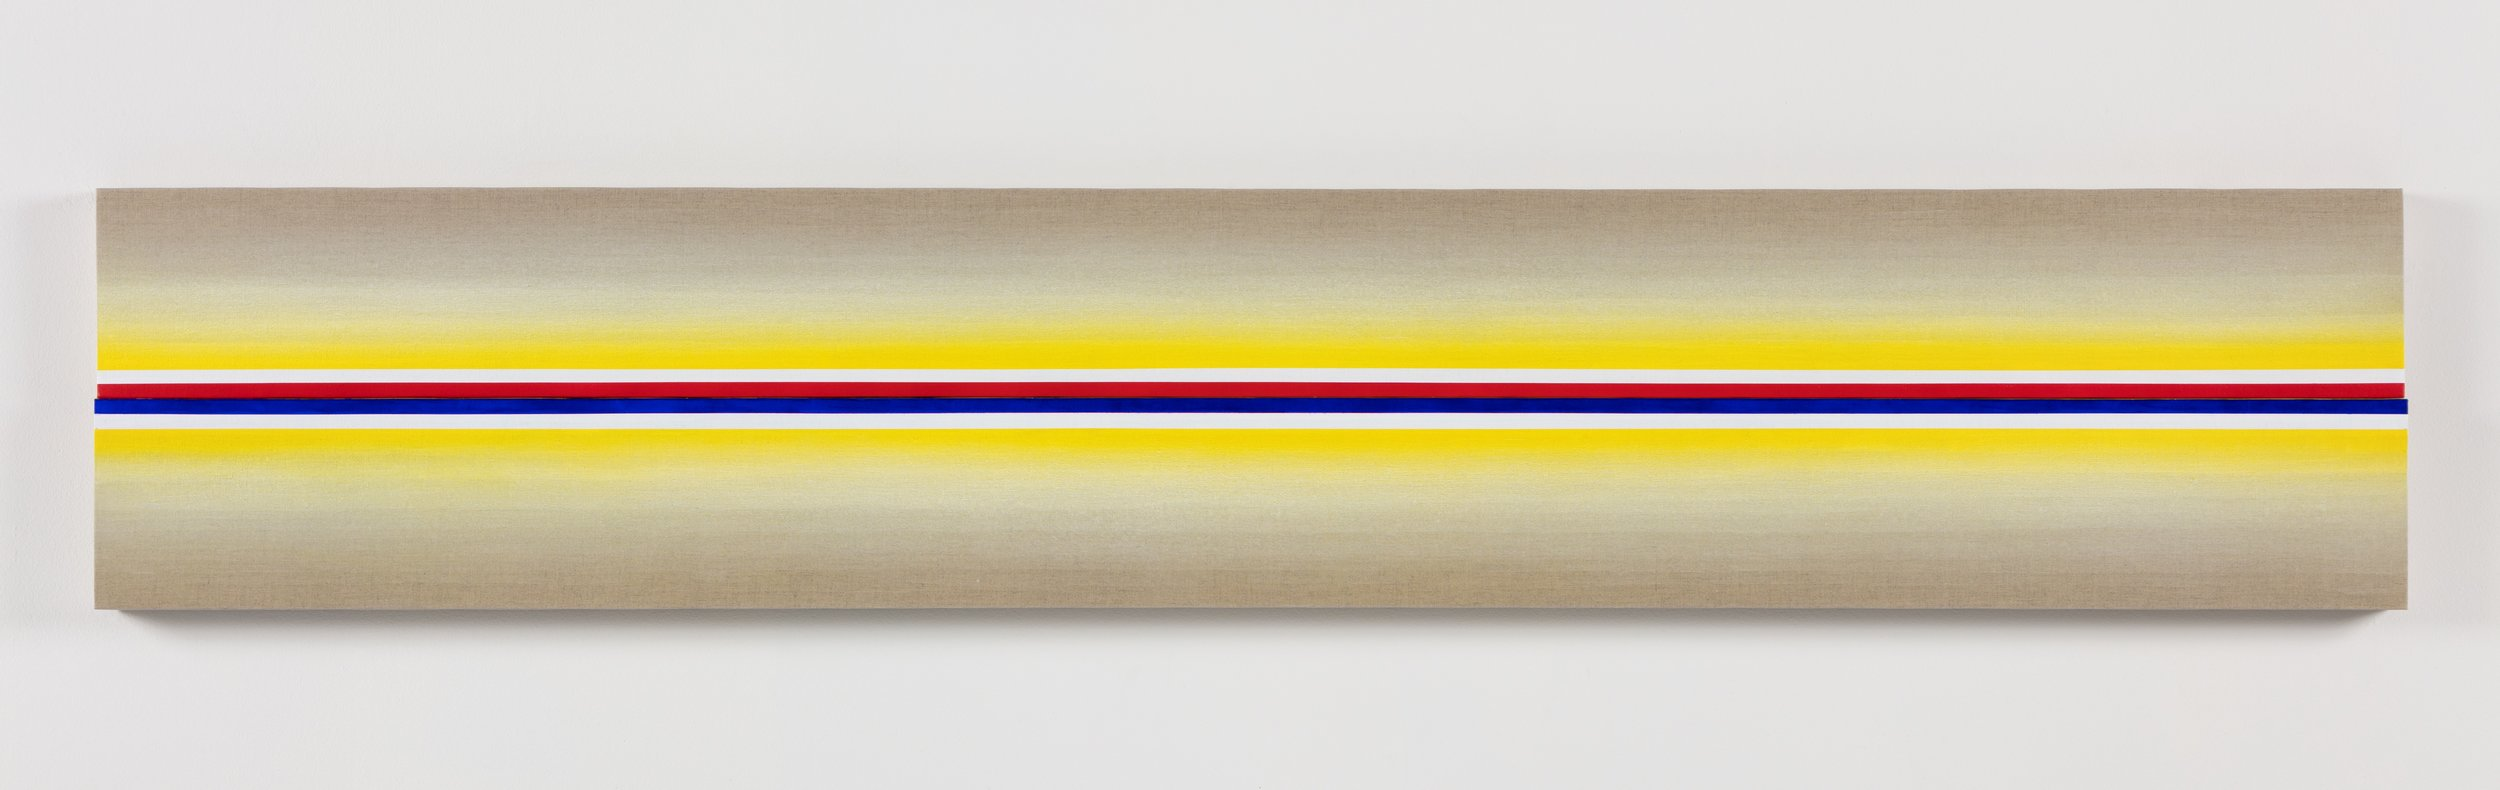 Adam Henry  Untitled (Sd2e3) , 2019 Synthetic polymers on Linen 11 × 61 inches (27.94 × 154.94 cm)